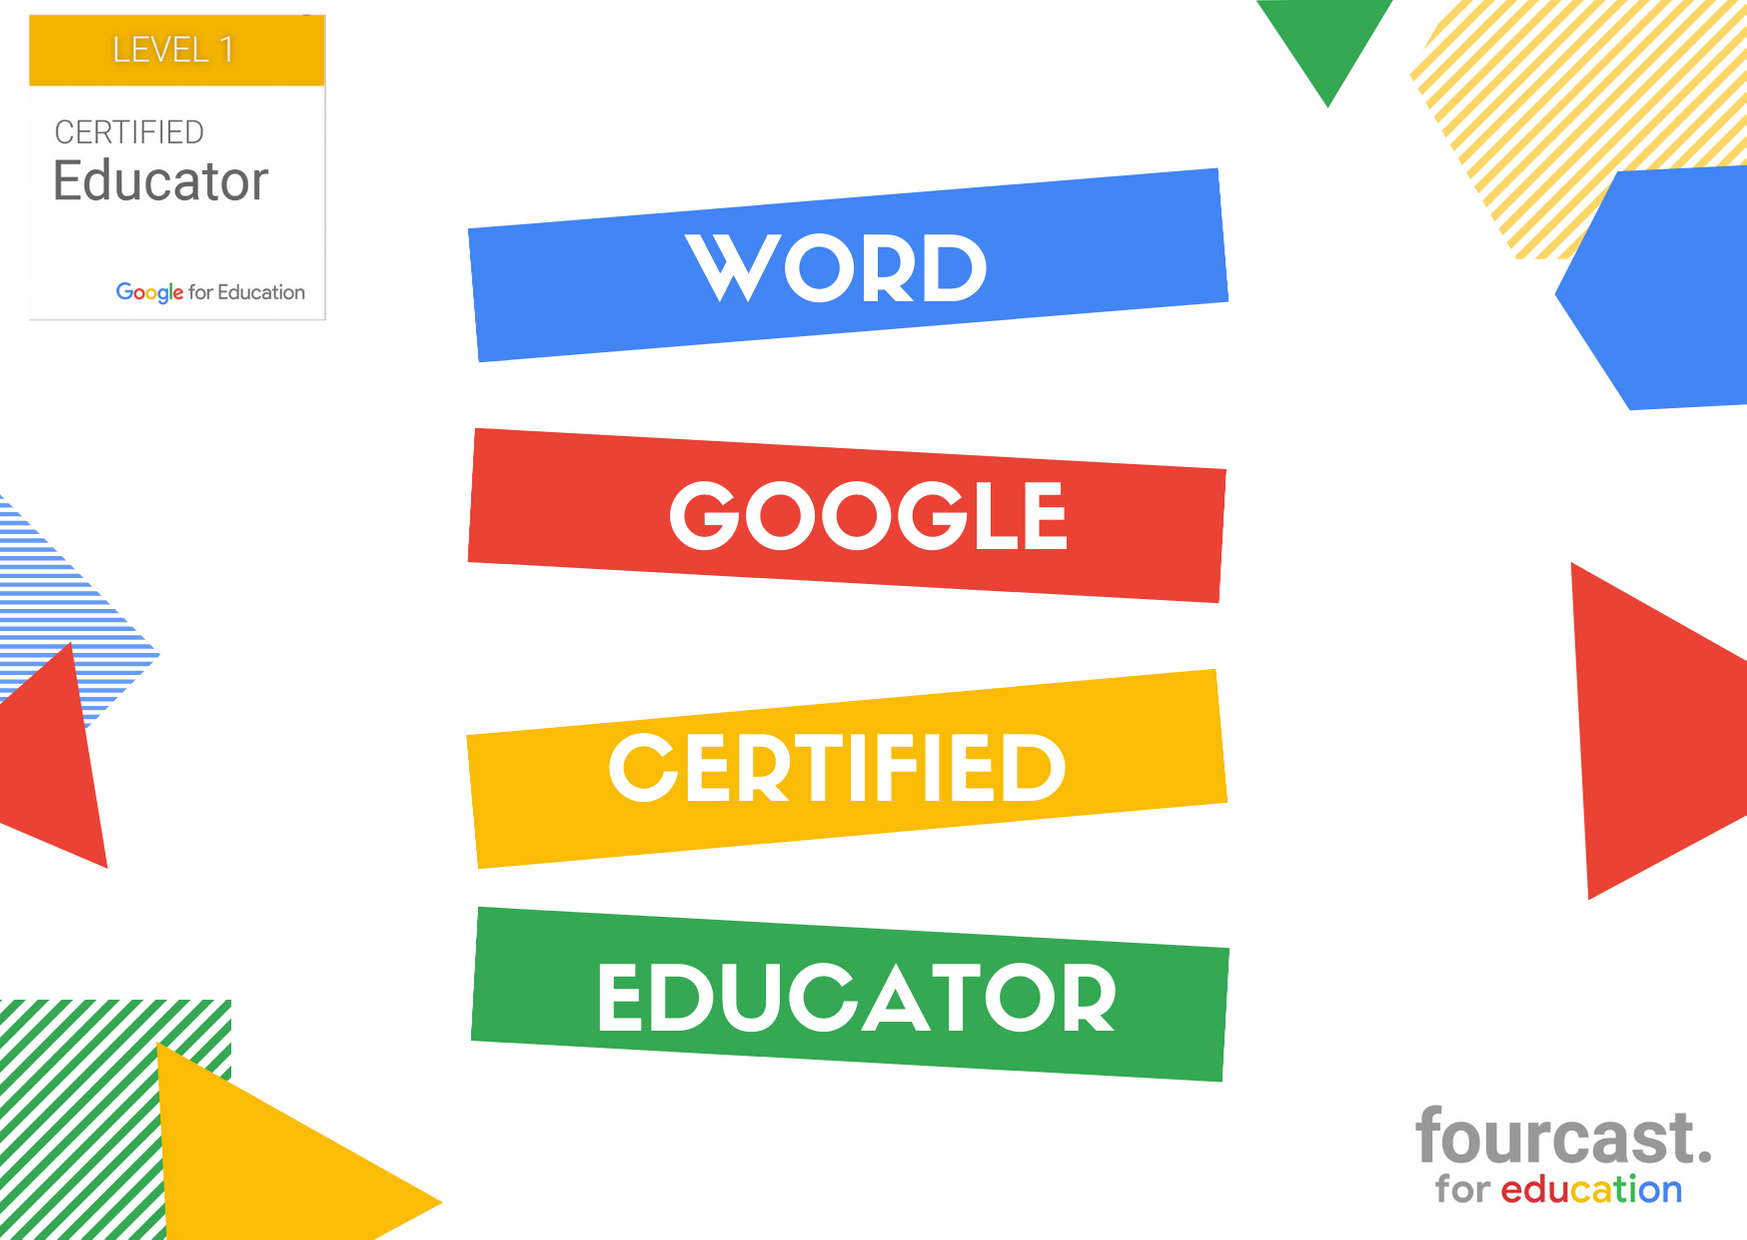 Word Google Certified Educator